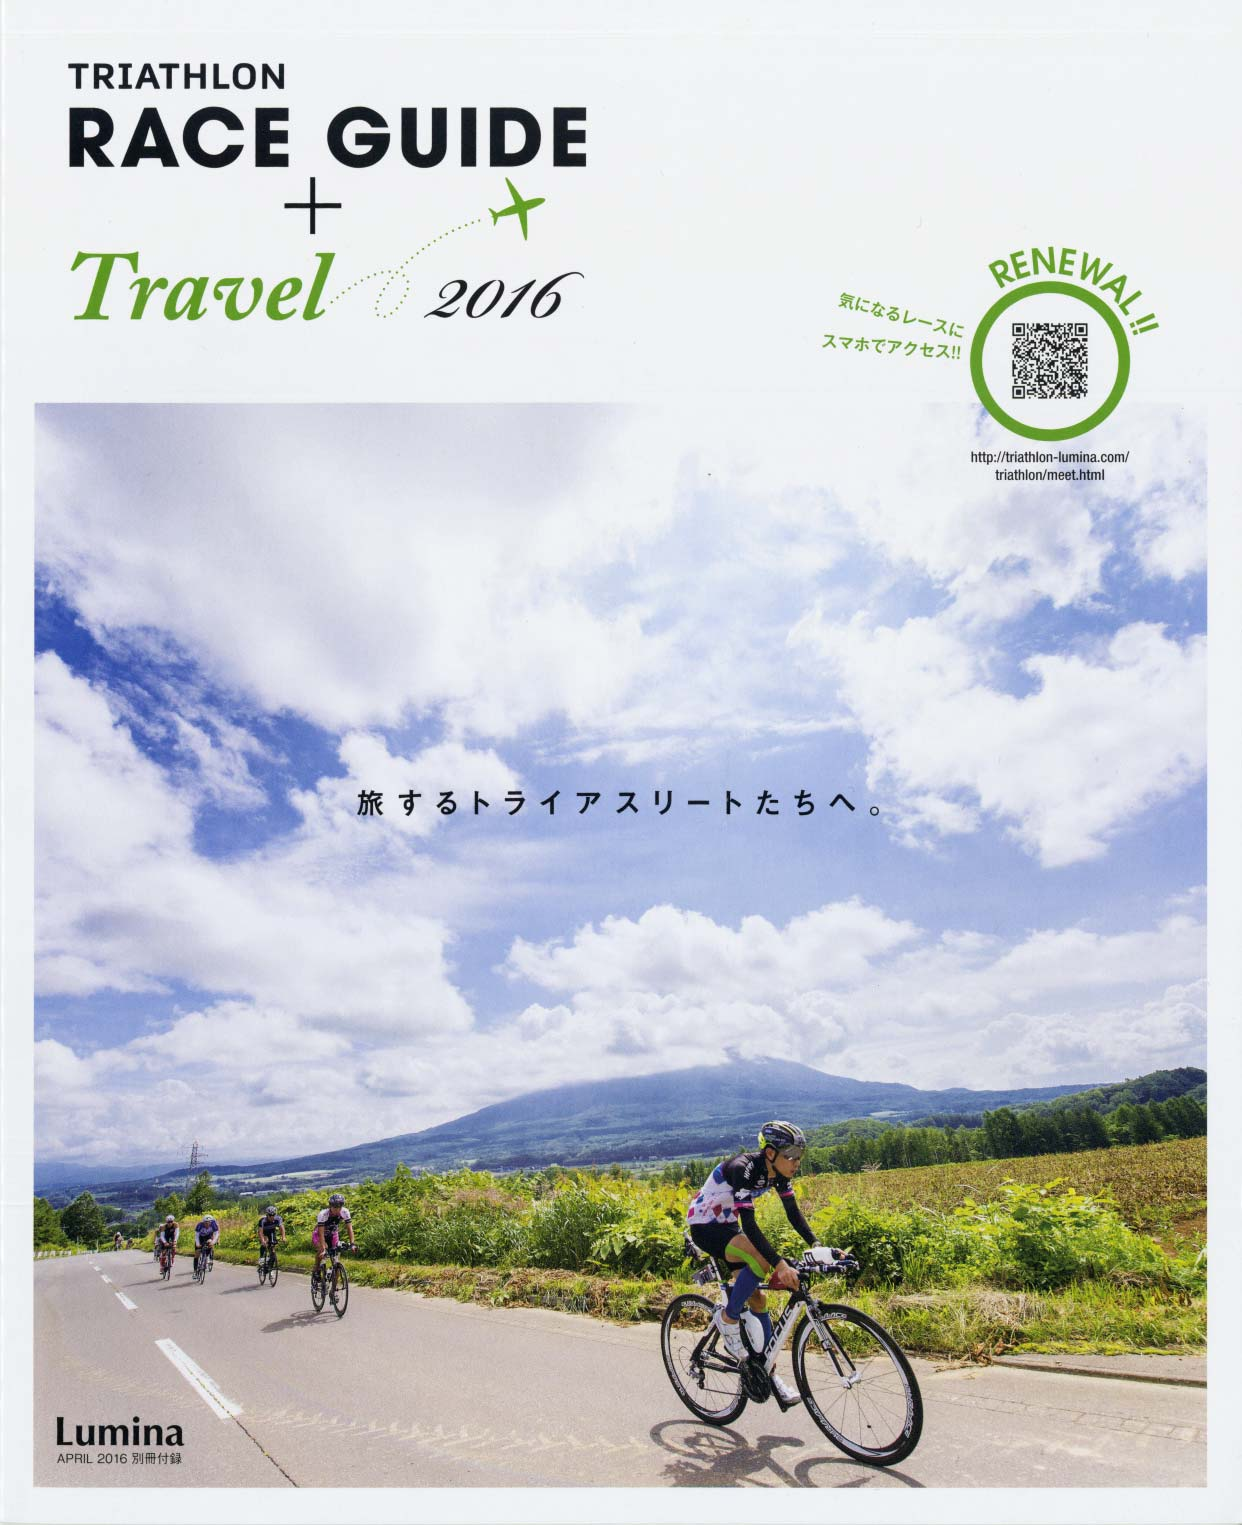 RACE GUIDE+Travel